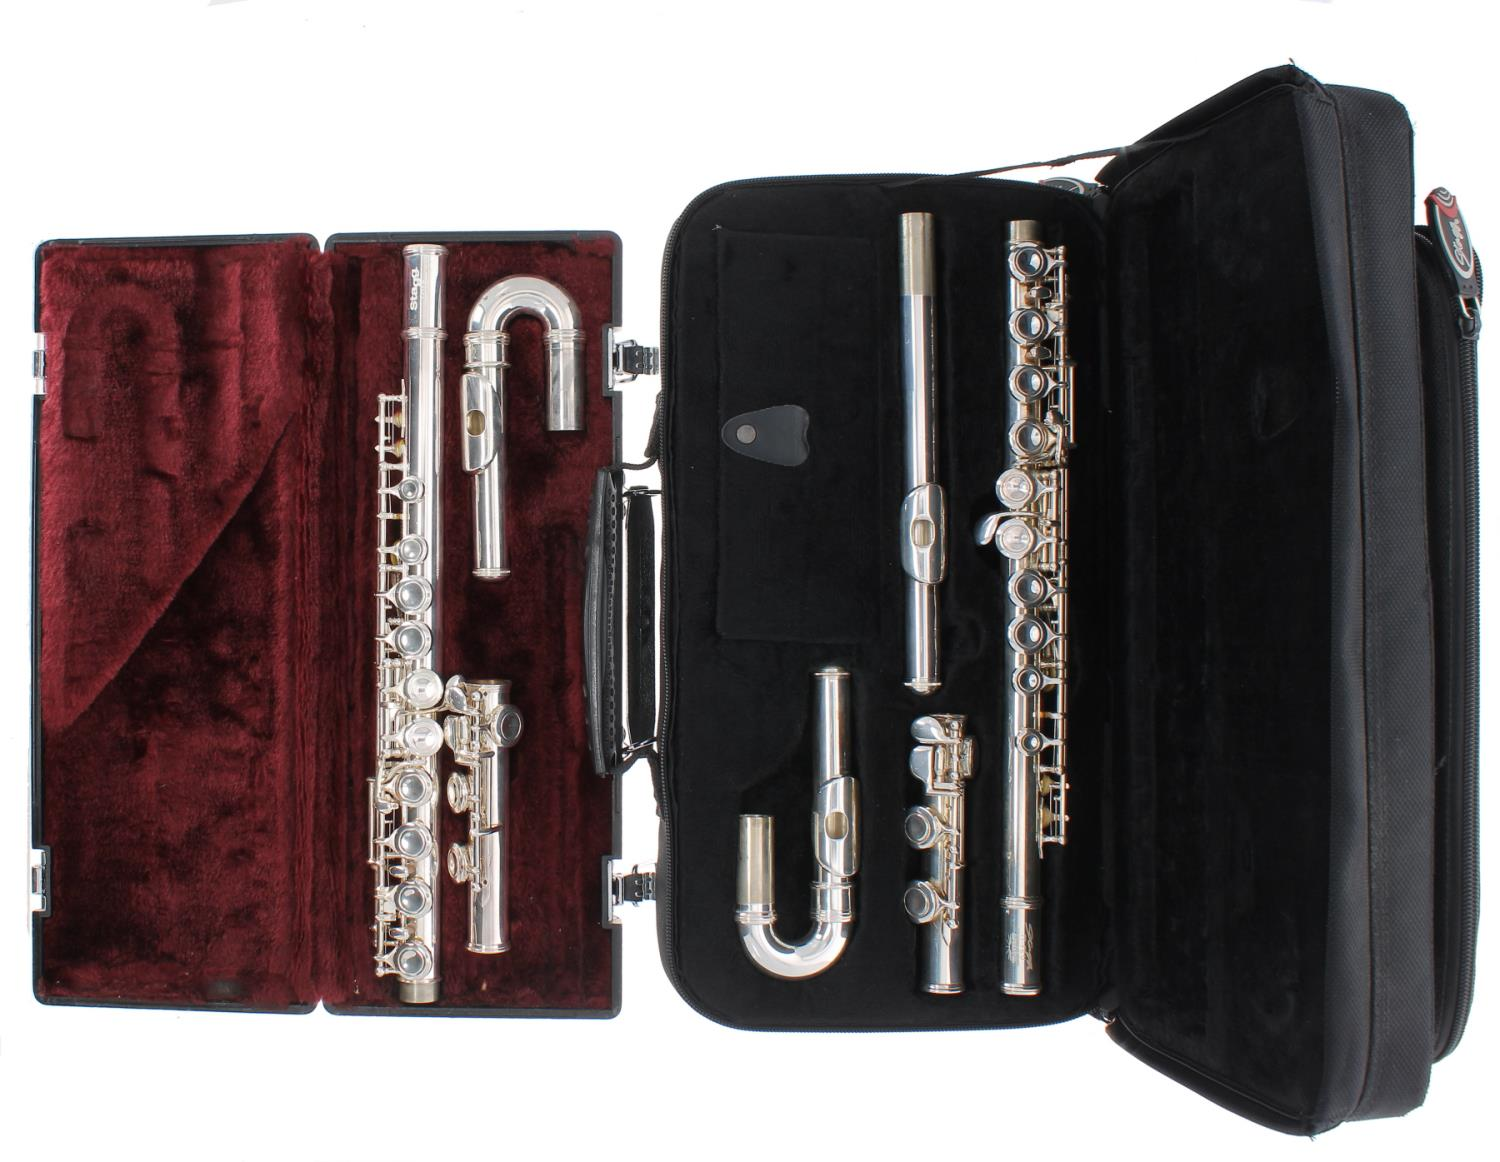 Stagg 77-FE U silver plated flute with curved head joint, case; also a Stagg 77-FE silver plated